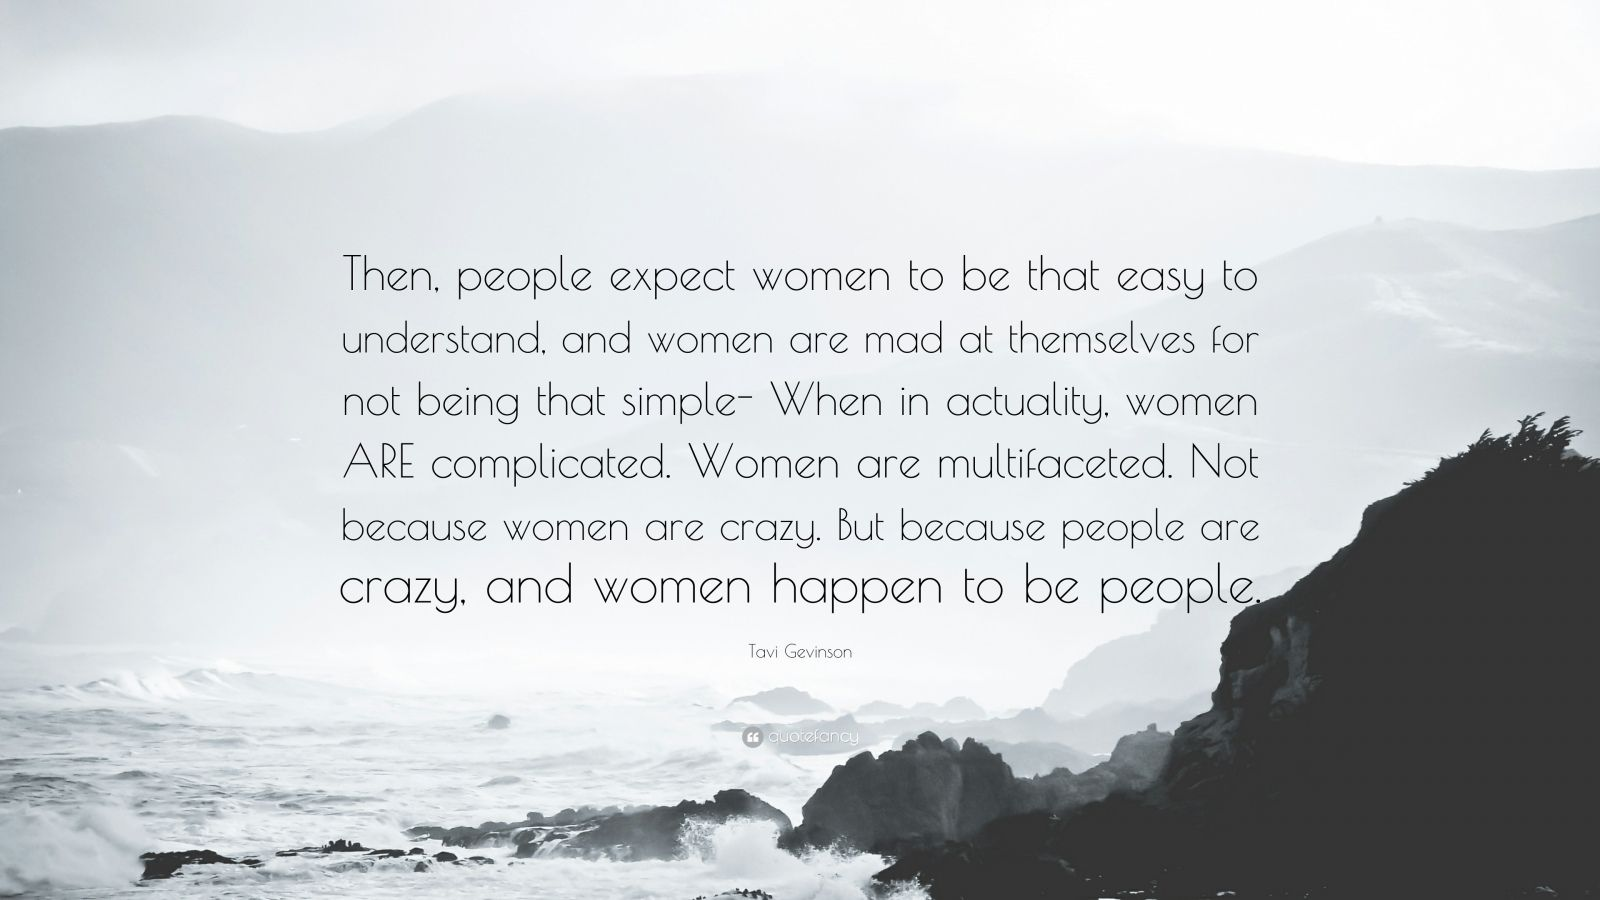 """Tavi Gevinson Quote: """"Then, people expect women to be that easy to understand, and women are mad at themselves for not being that simple- When in actuality, women ARE complicated. Women are multifaceted. Not because women are crazy. But because people are crazy, and women happen to be people."""""""